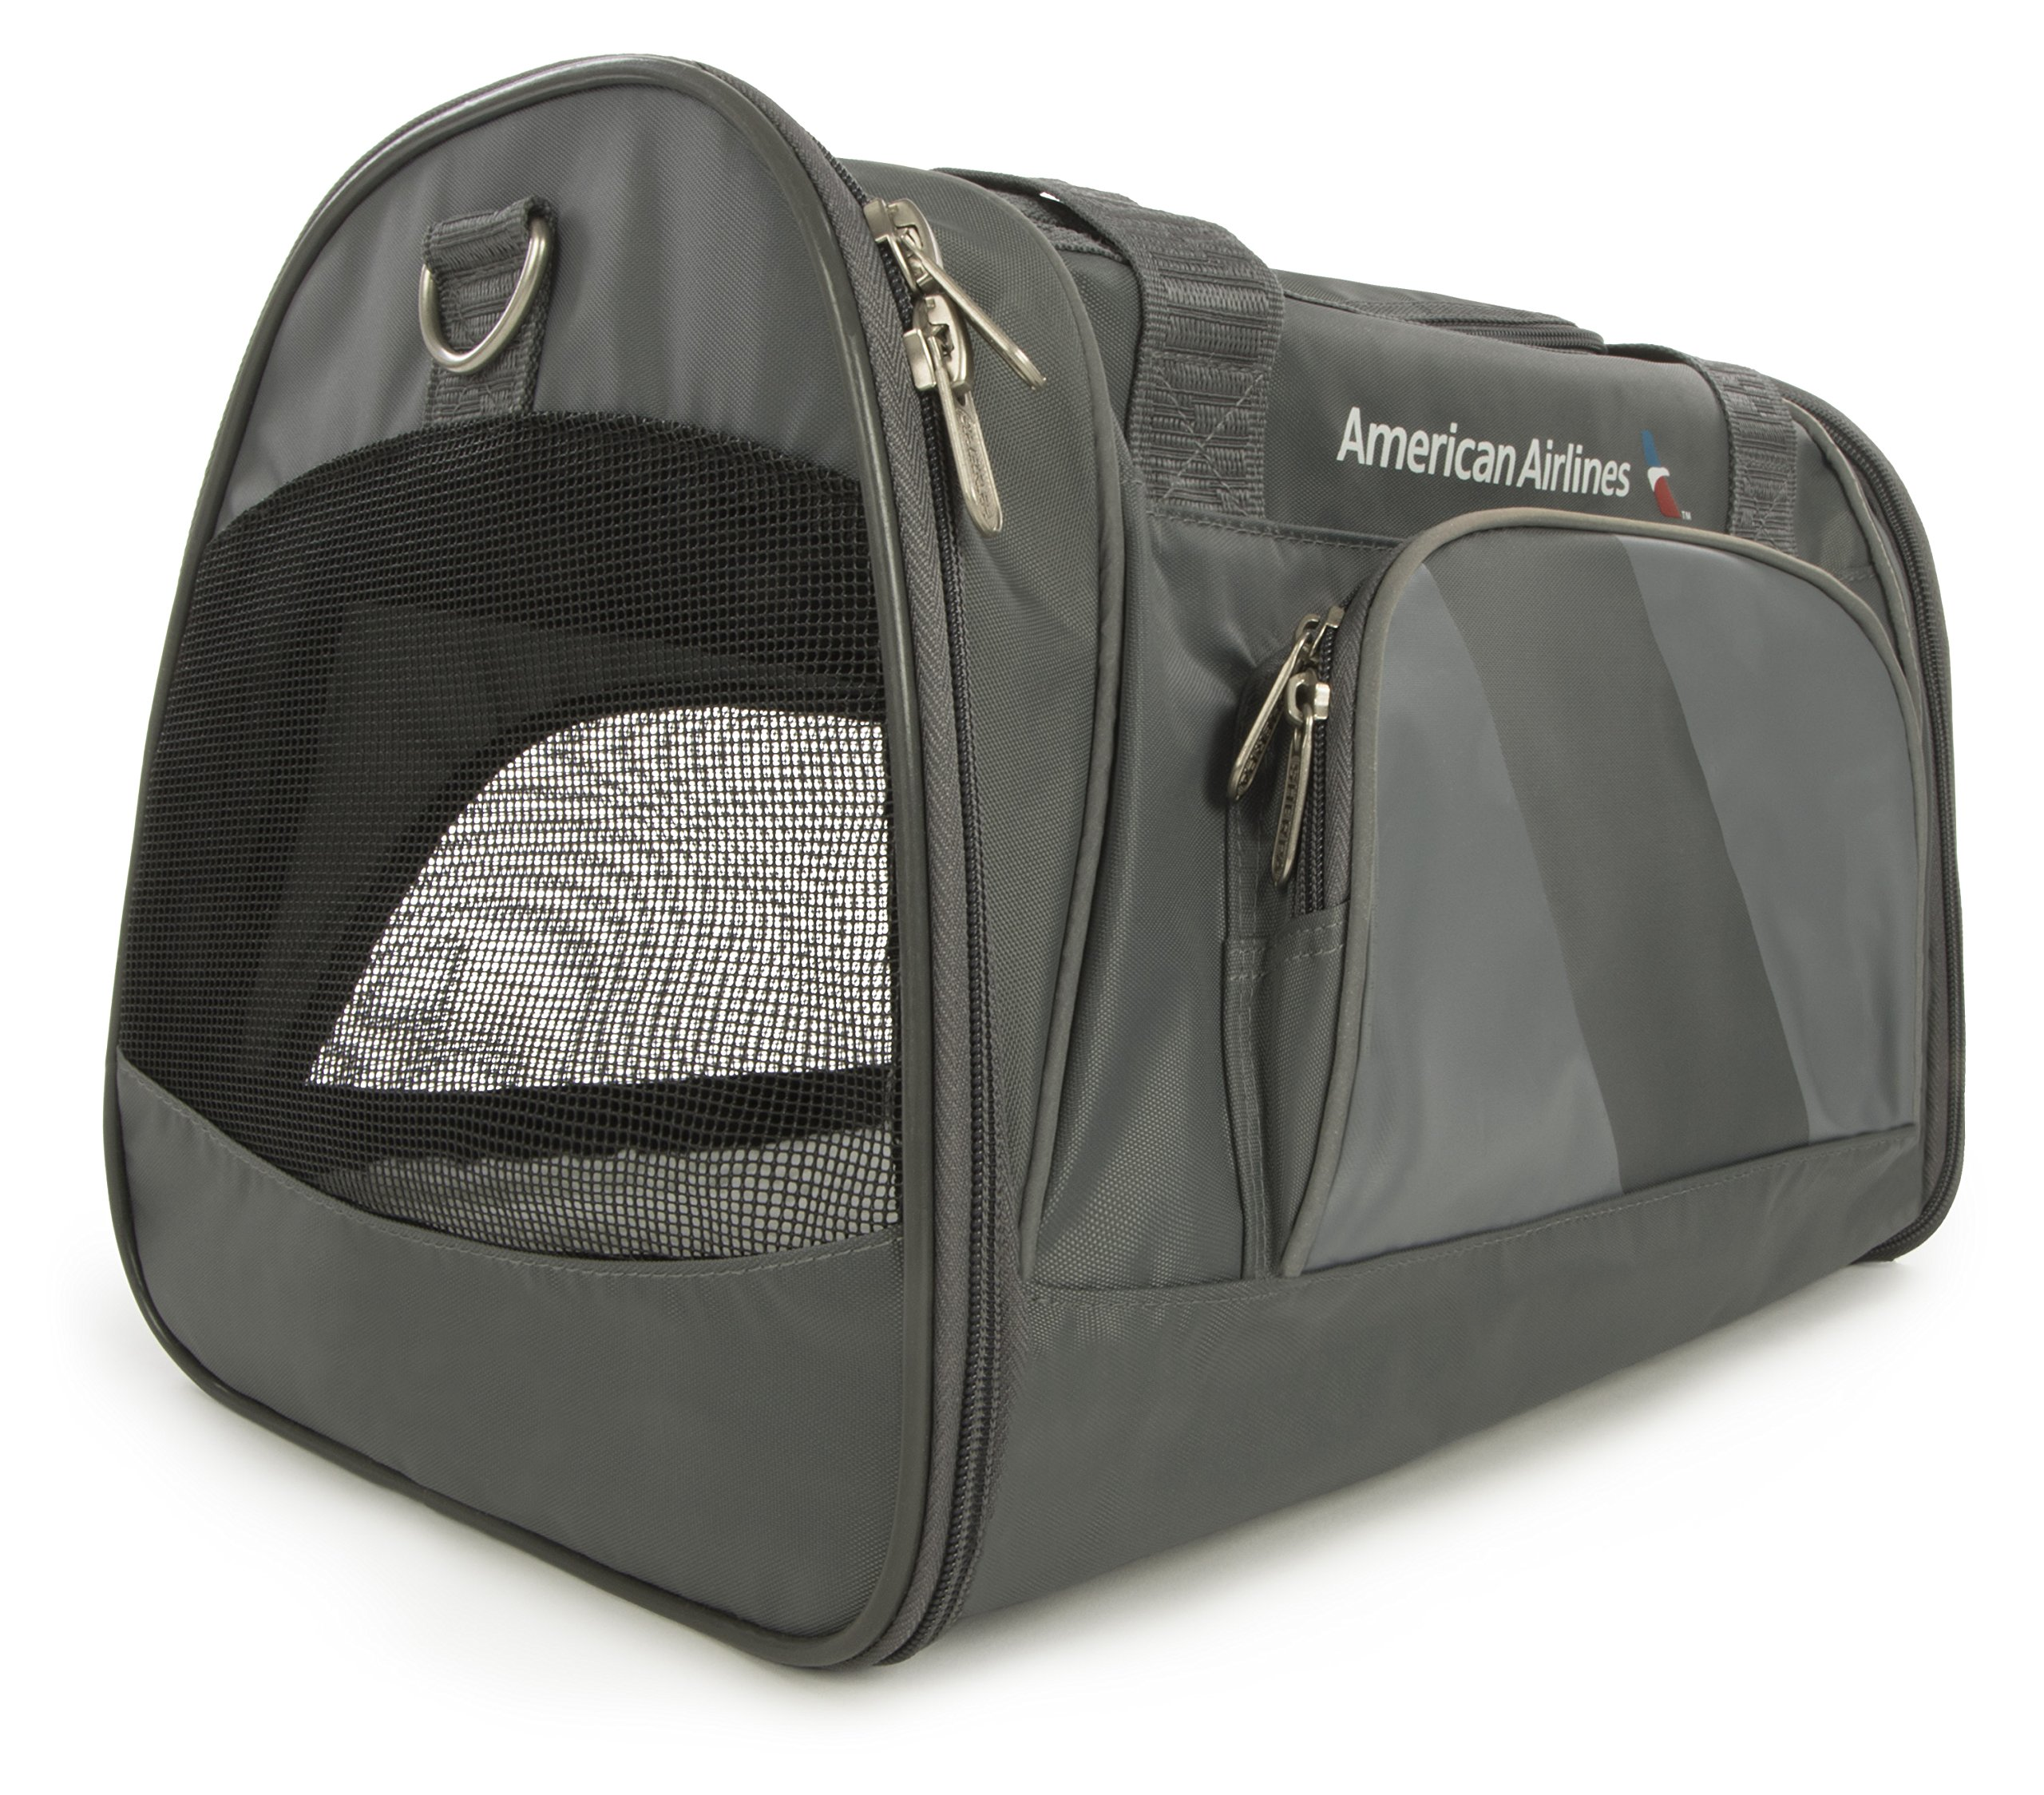 Sherpa American Airlines Duffel Airline Approved Pet Carrier, Charcoal, Medium (Frustration Free Packaging) by Sherpa